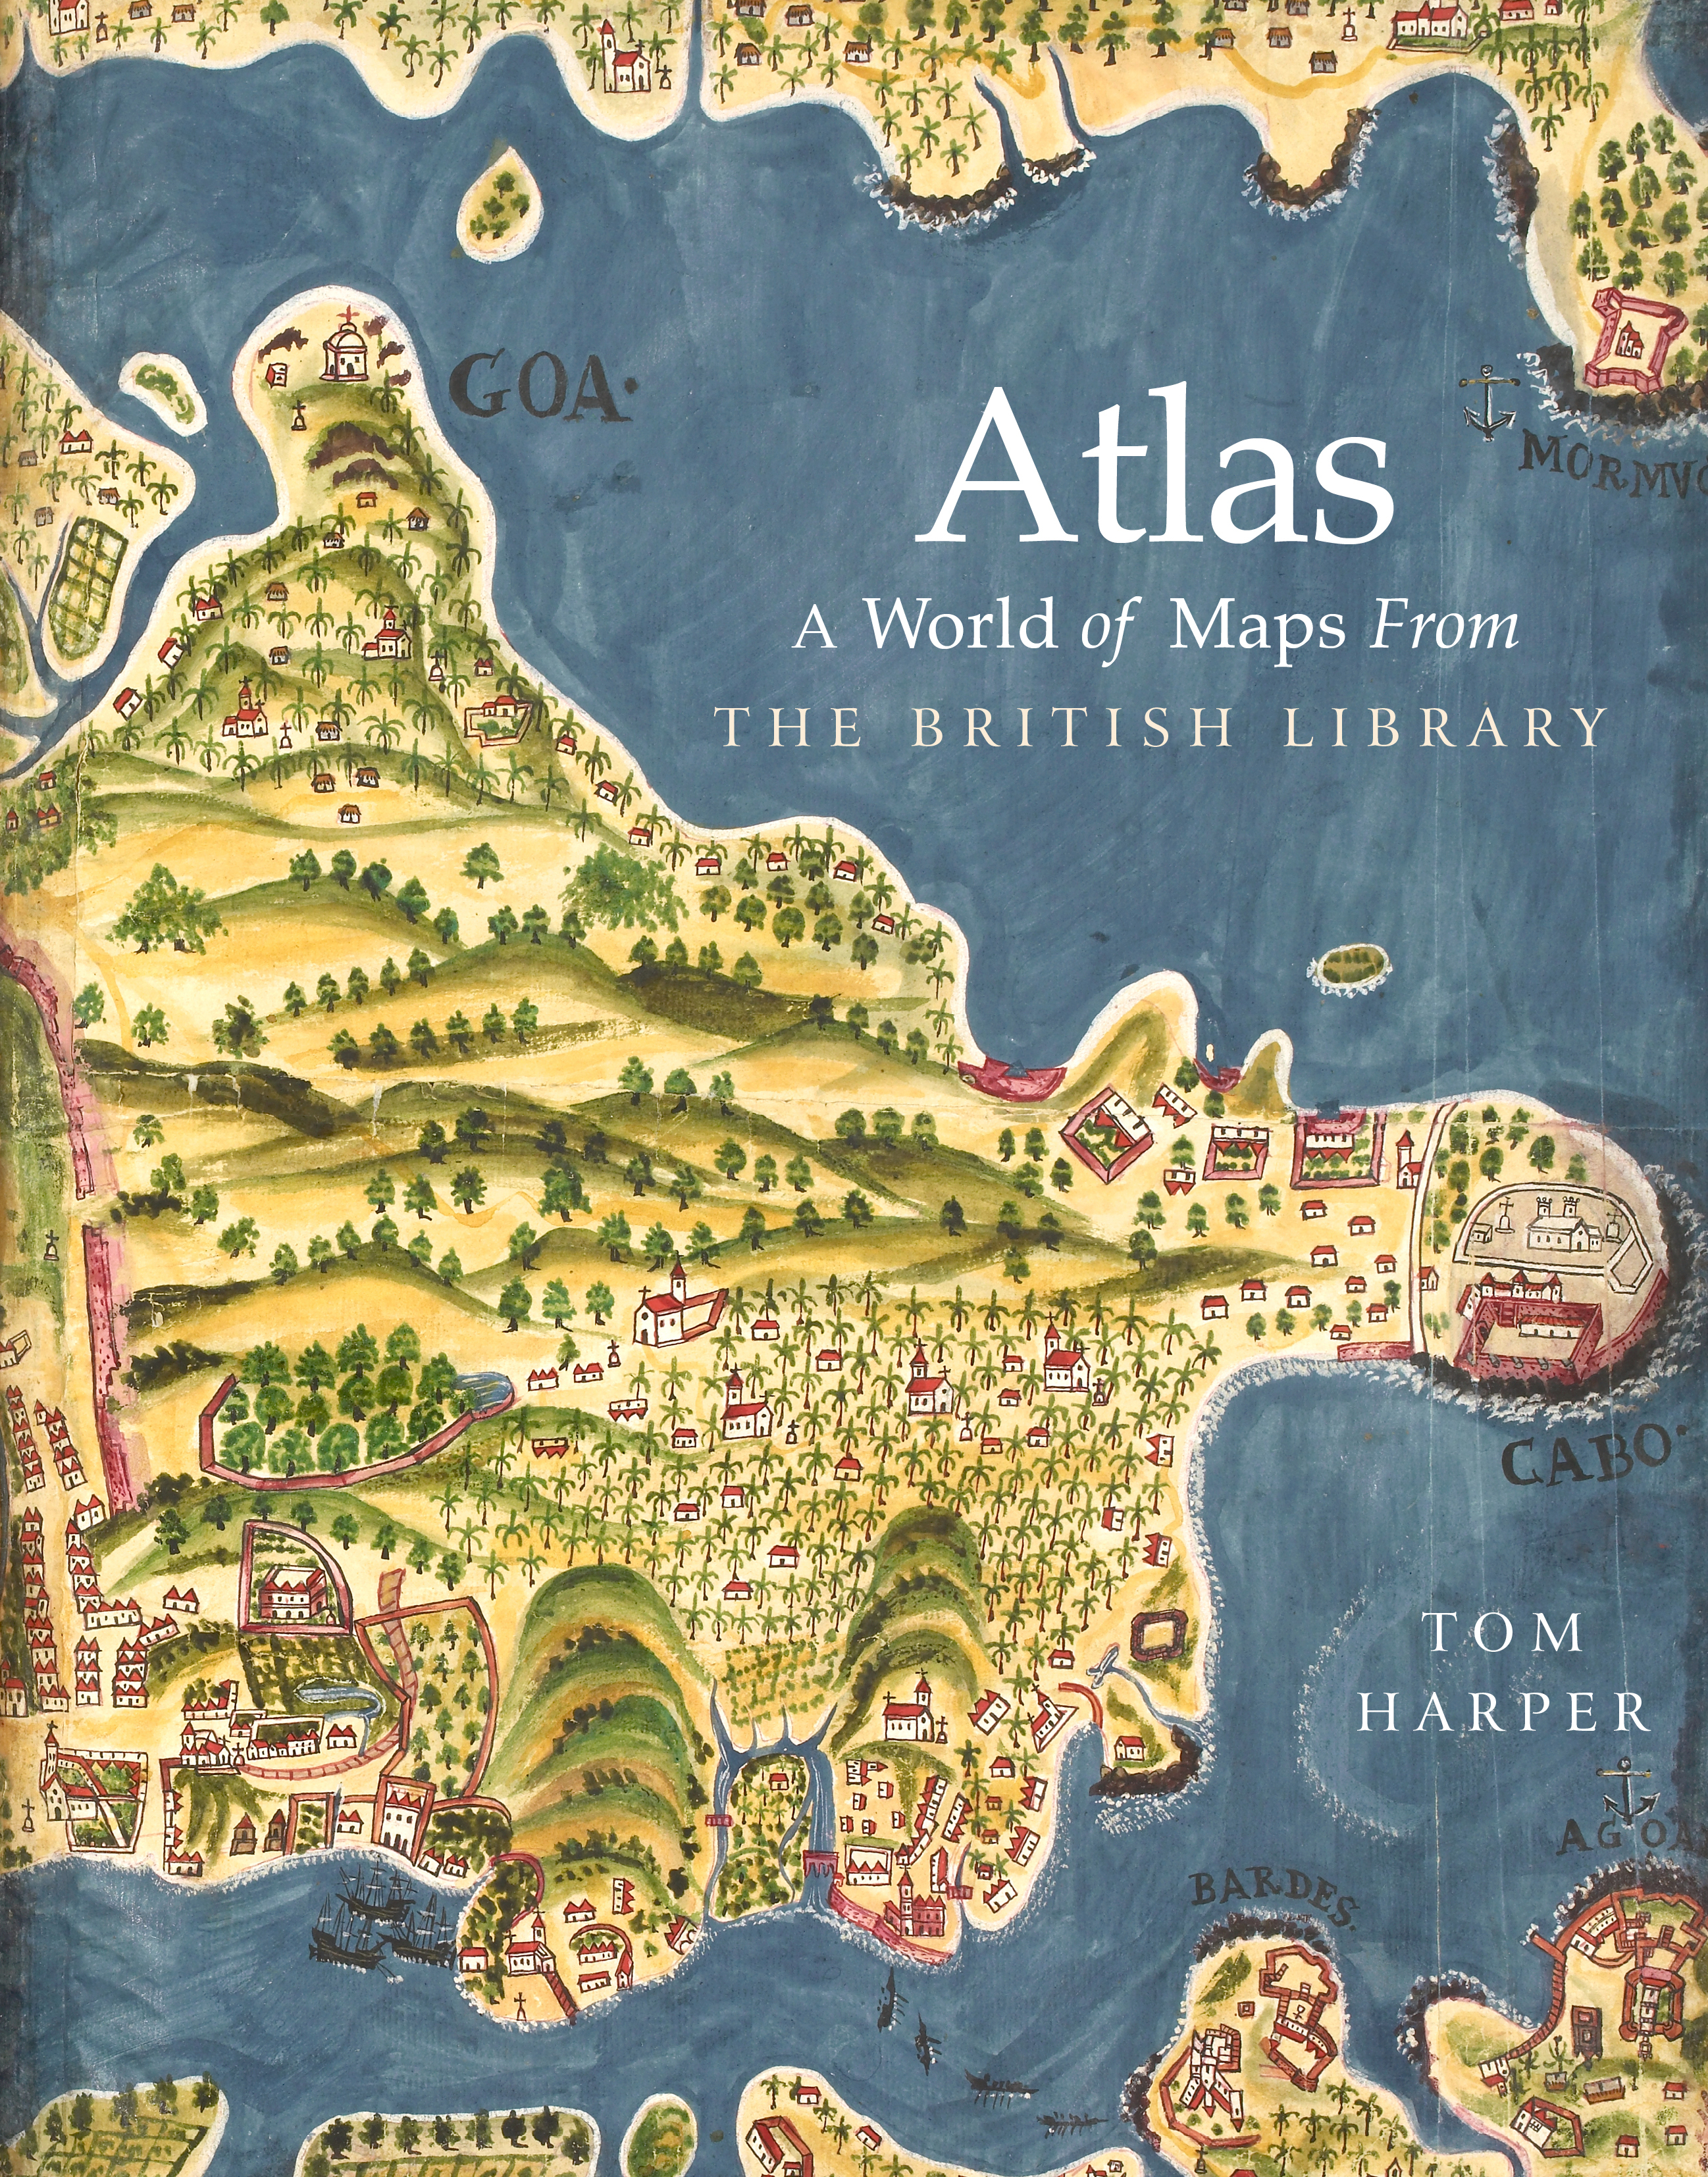 Atlas: A World of Maps from the British Library - The British Library